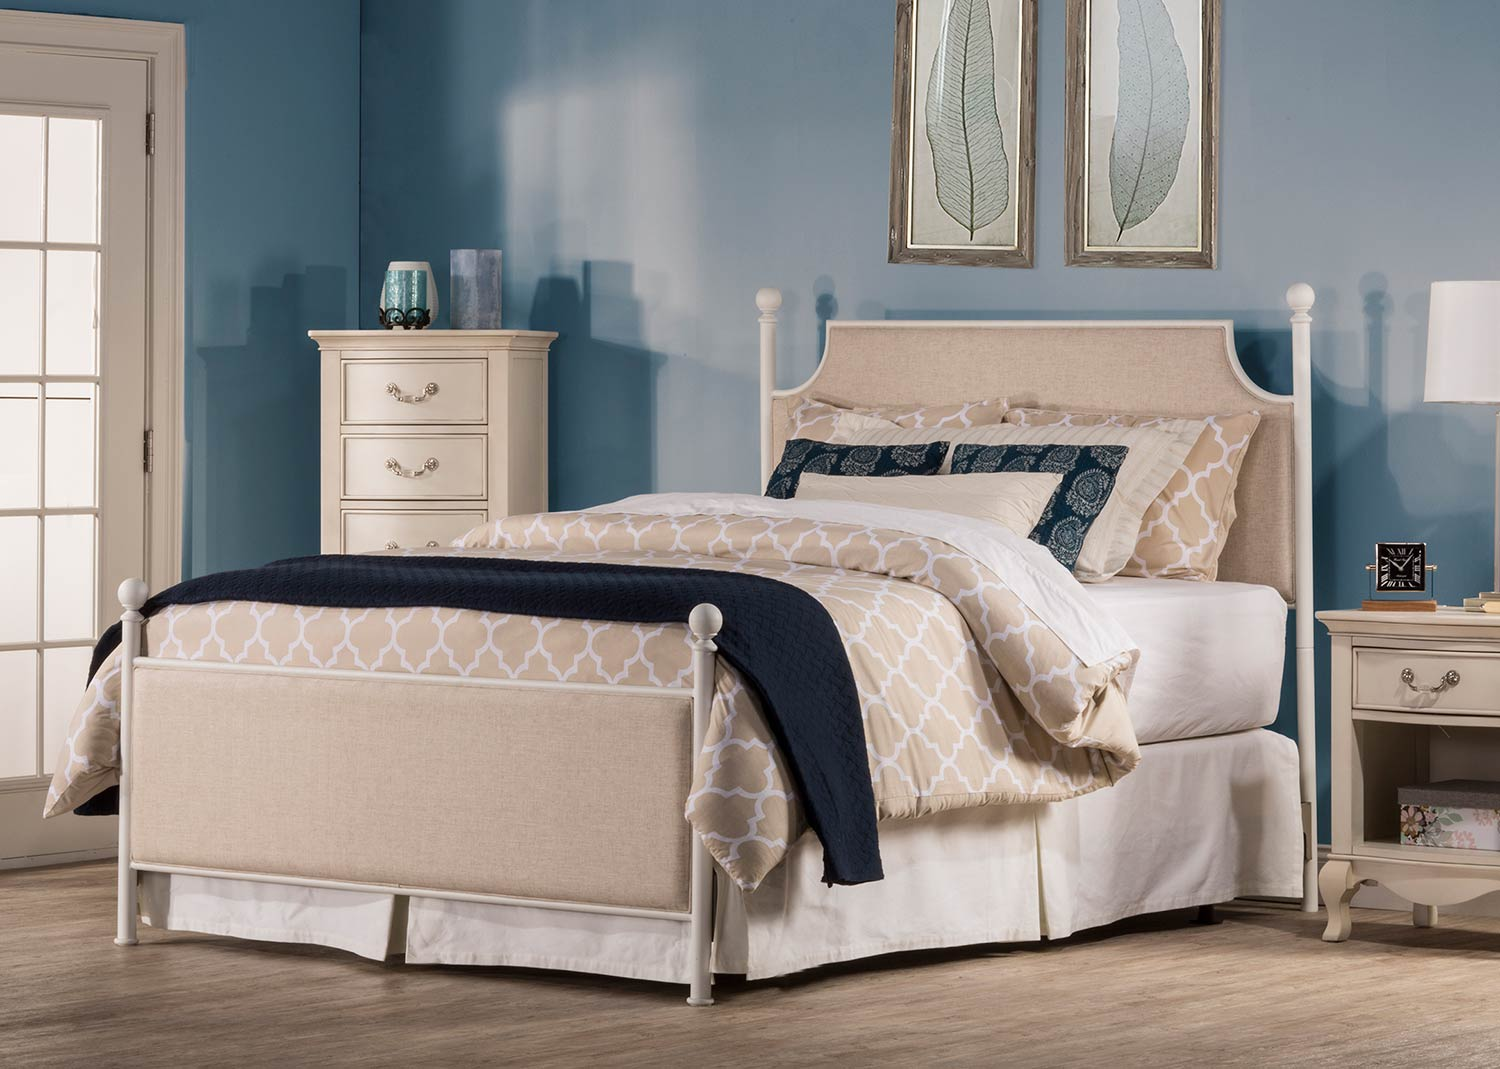 Hillsdale McArthur Bed - Off-White - Oatmeal Linen Fabric